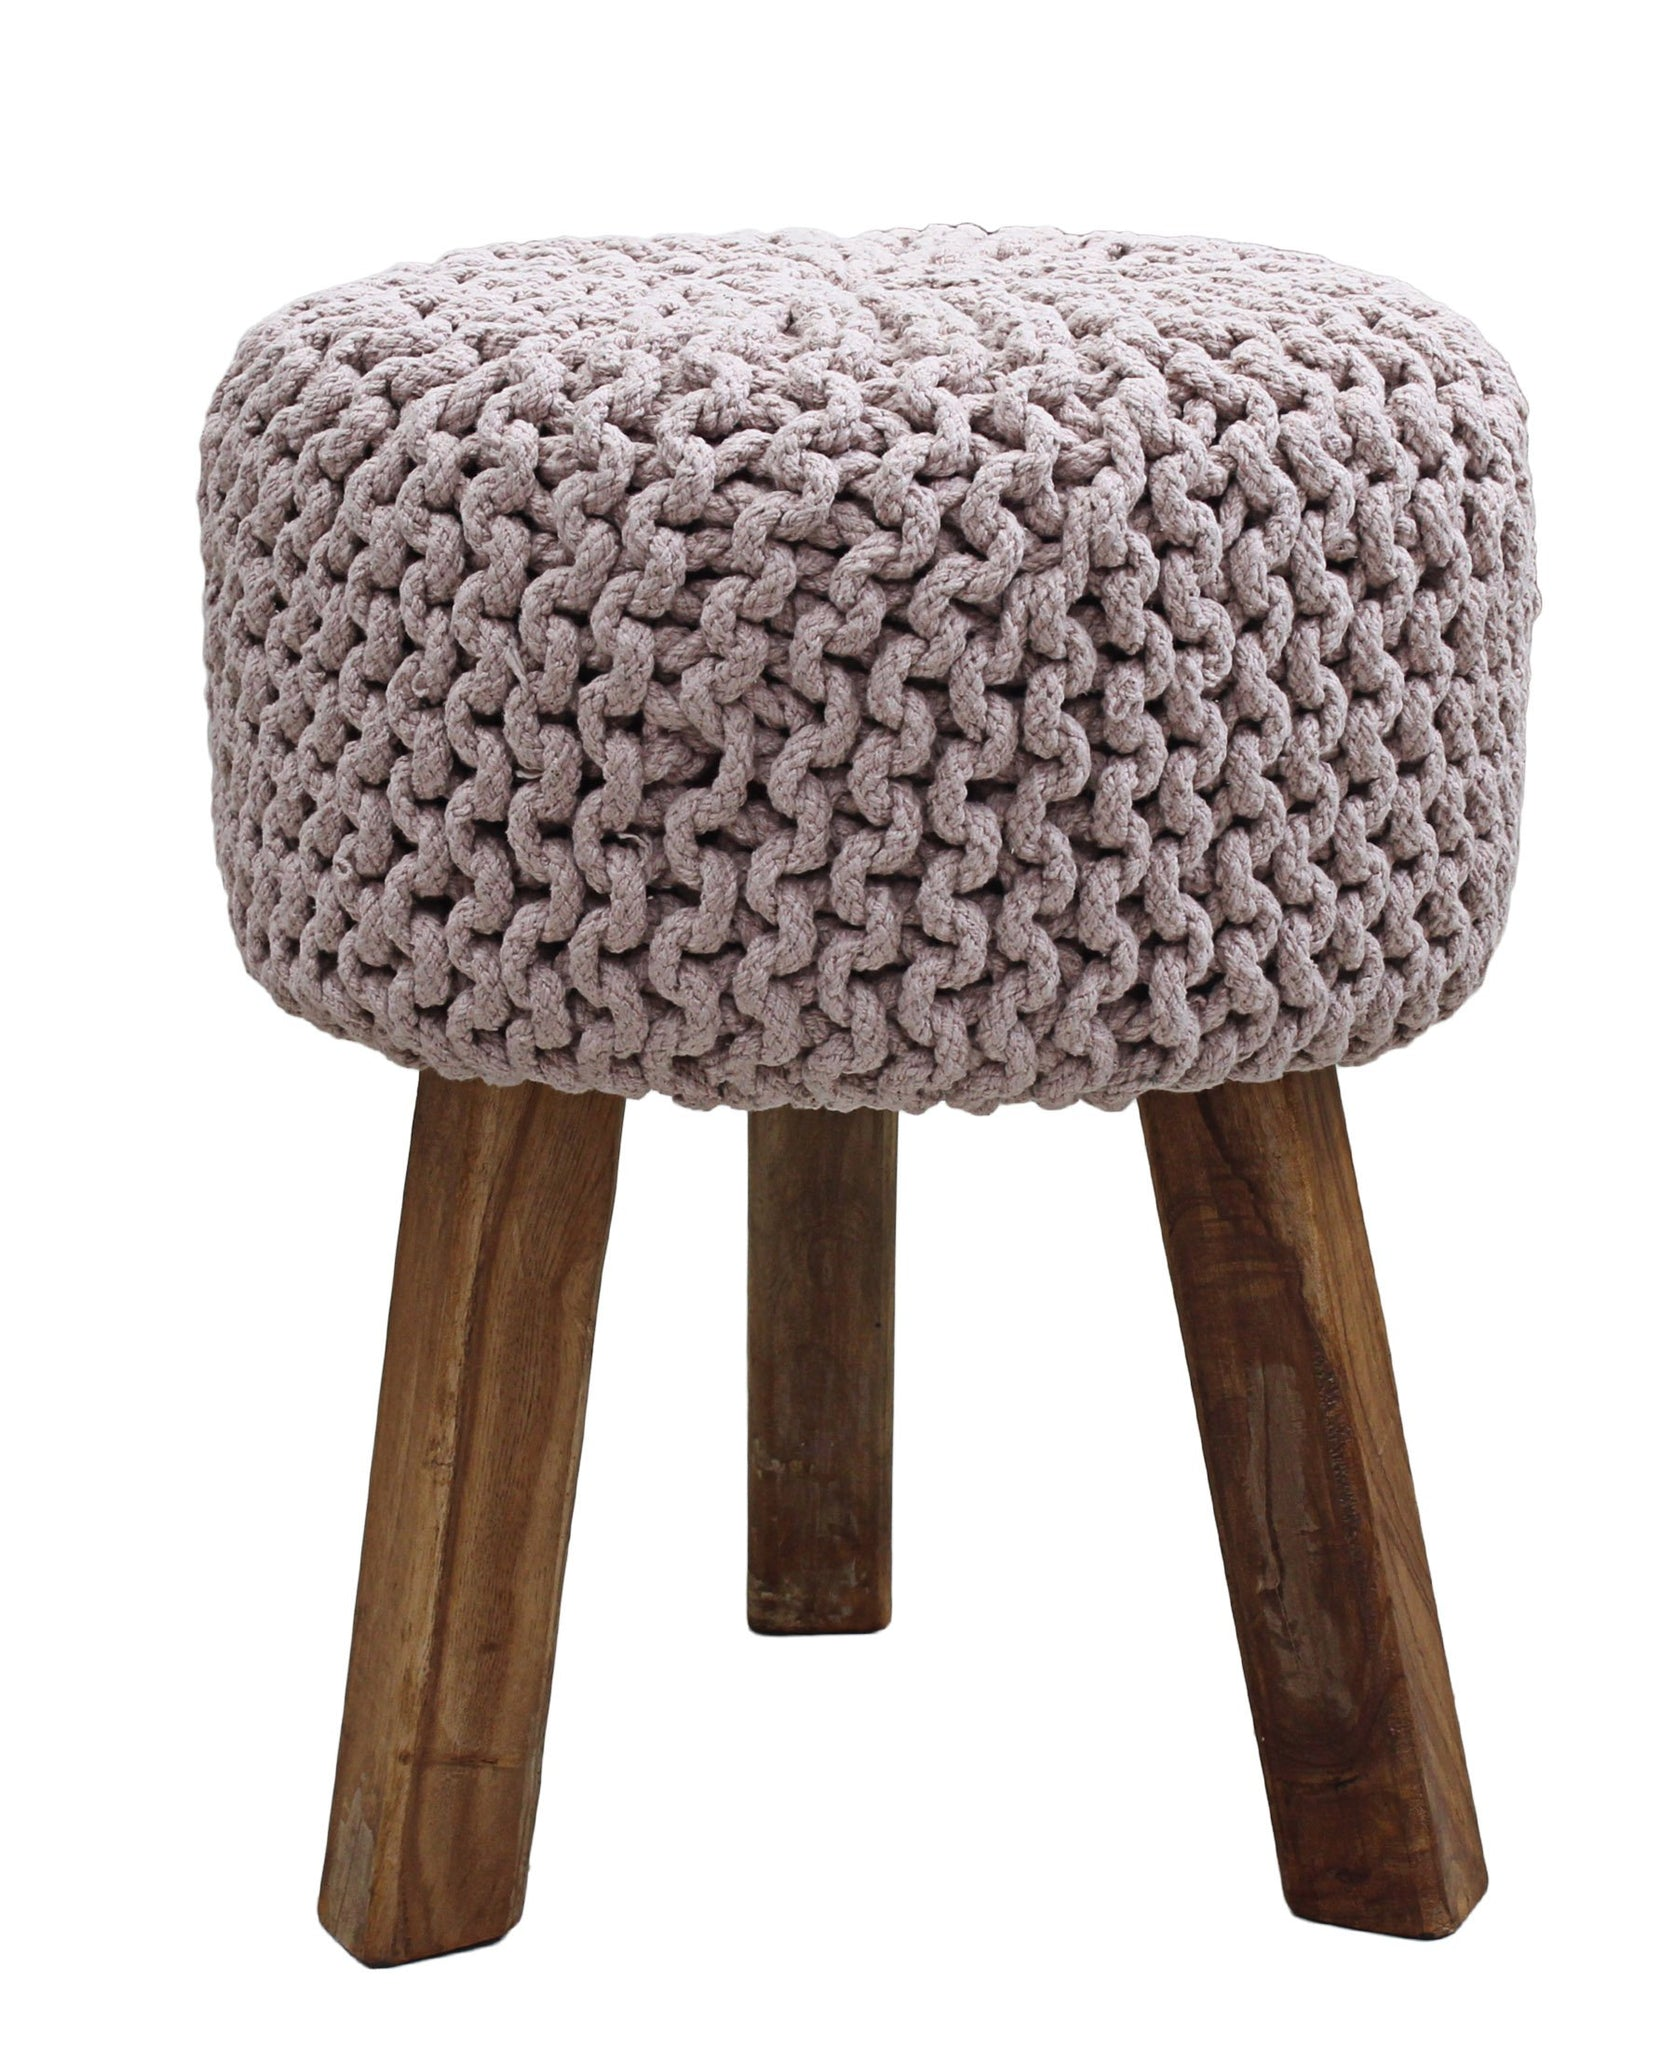 Urban Decor Neo Stool Handmade 470mm - Pink